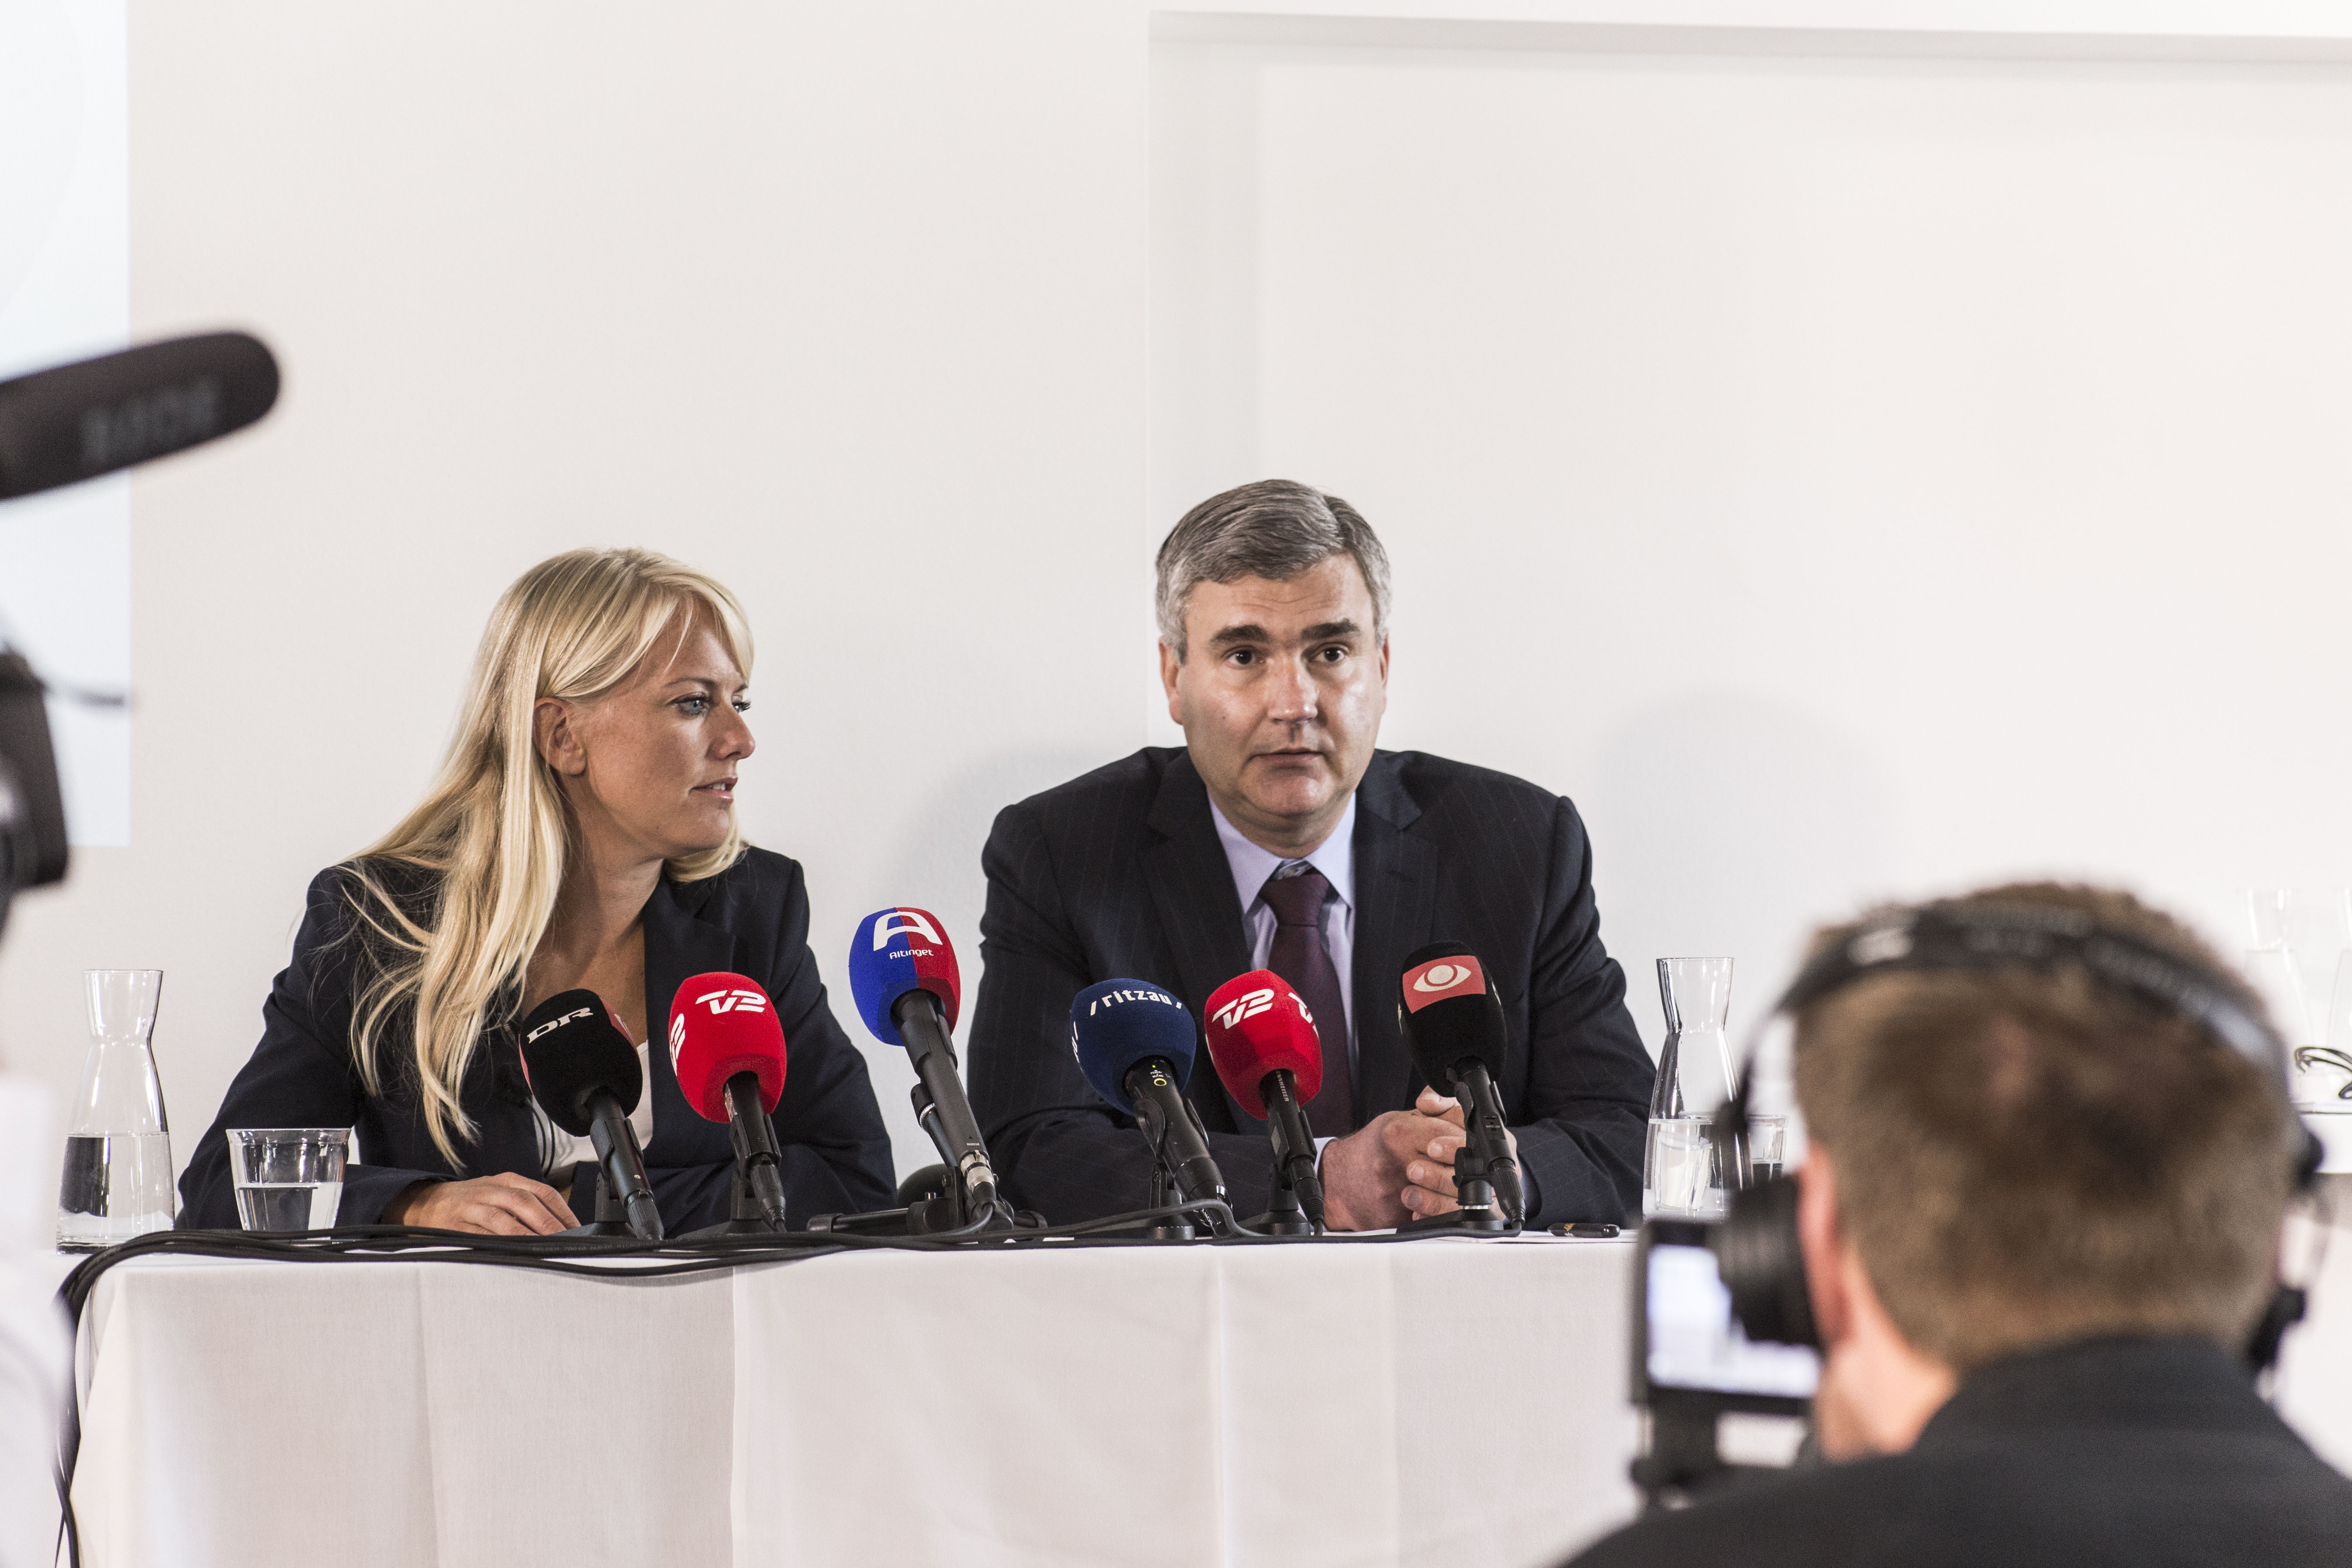 Pernille Vermund and vice chairman Peter Seier Christensen at a press conference.